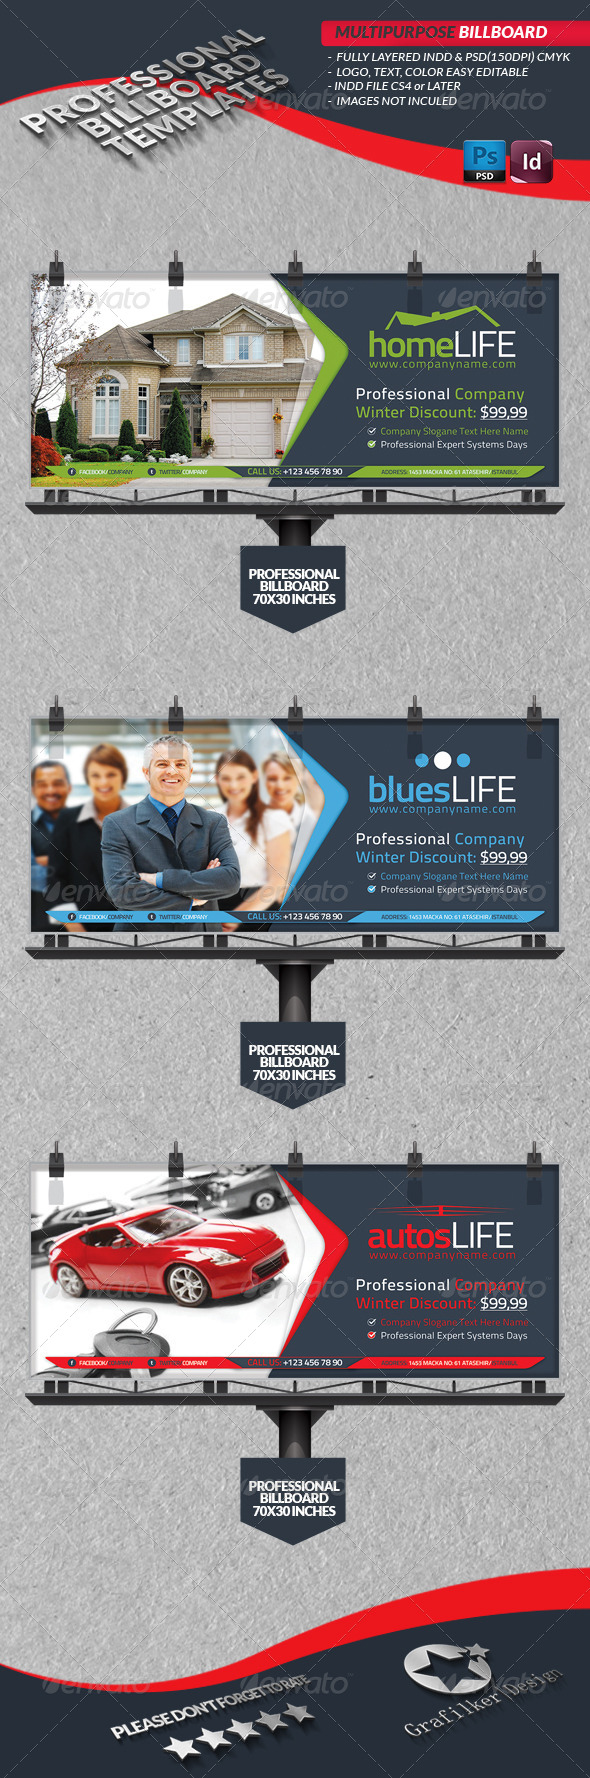 GraphicRiver Multipurpose Business Billbord 4023678